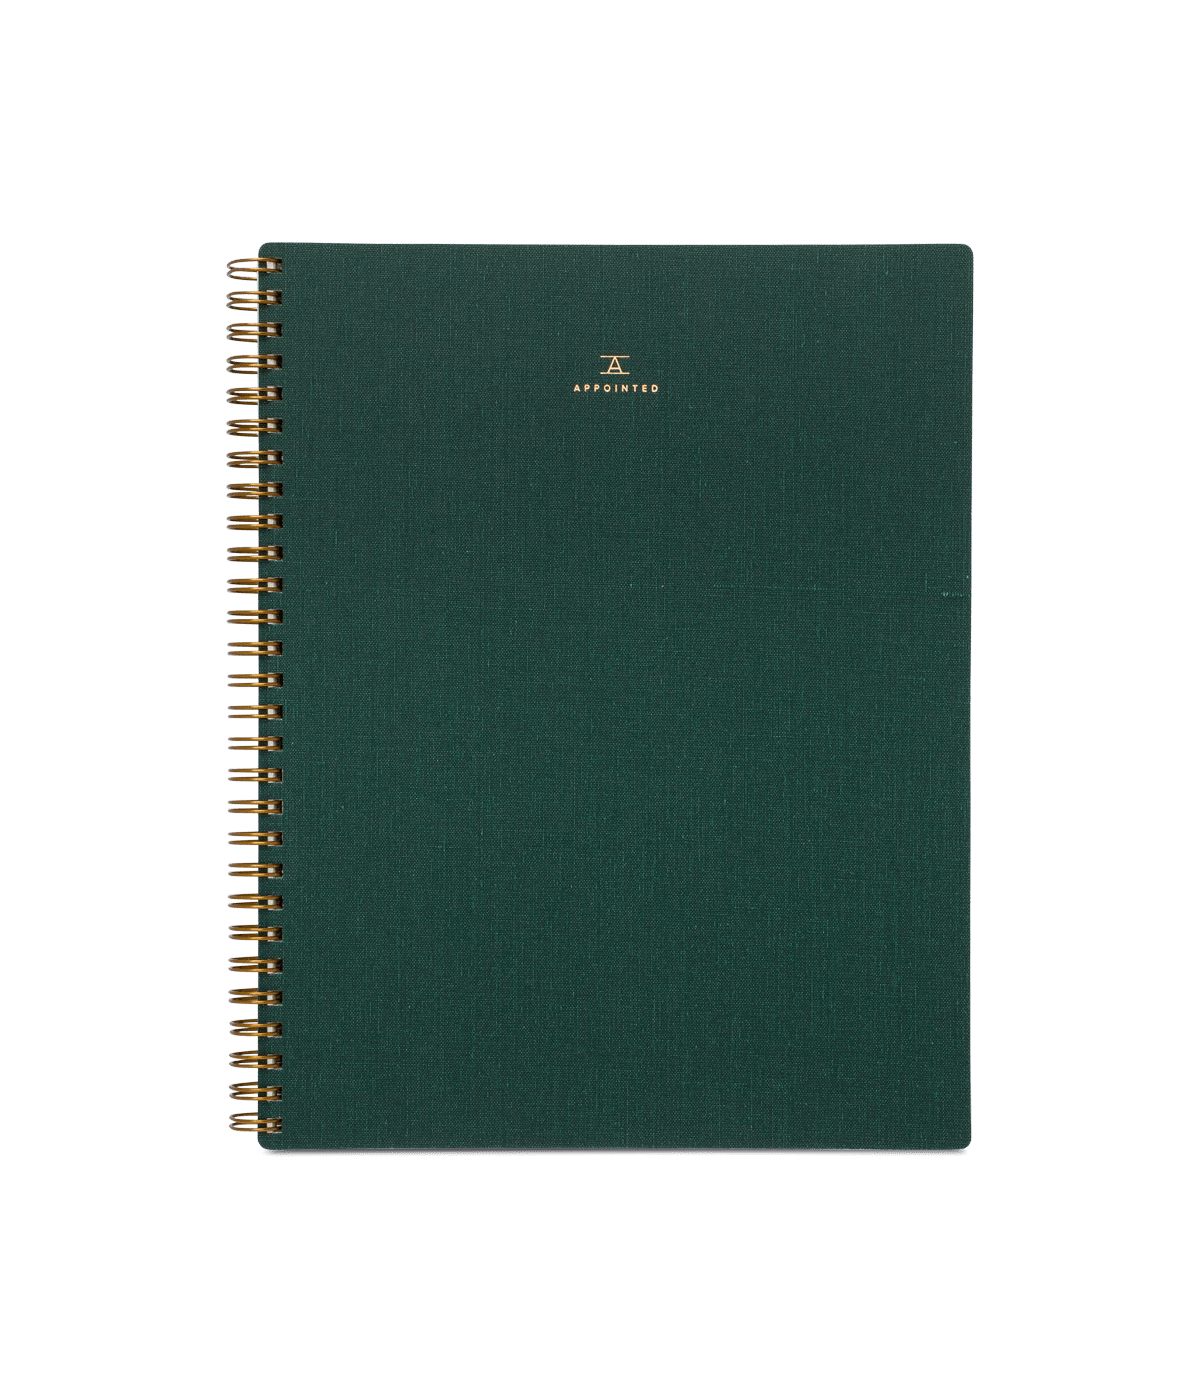 Blank Notebooks, Appointed